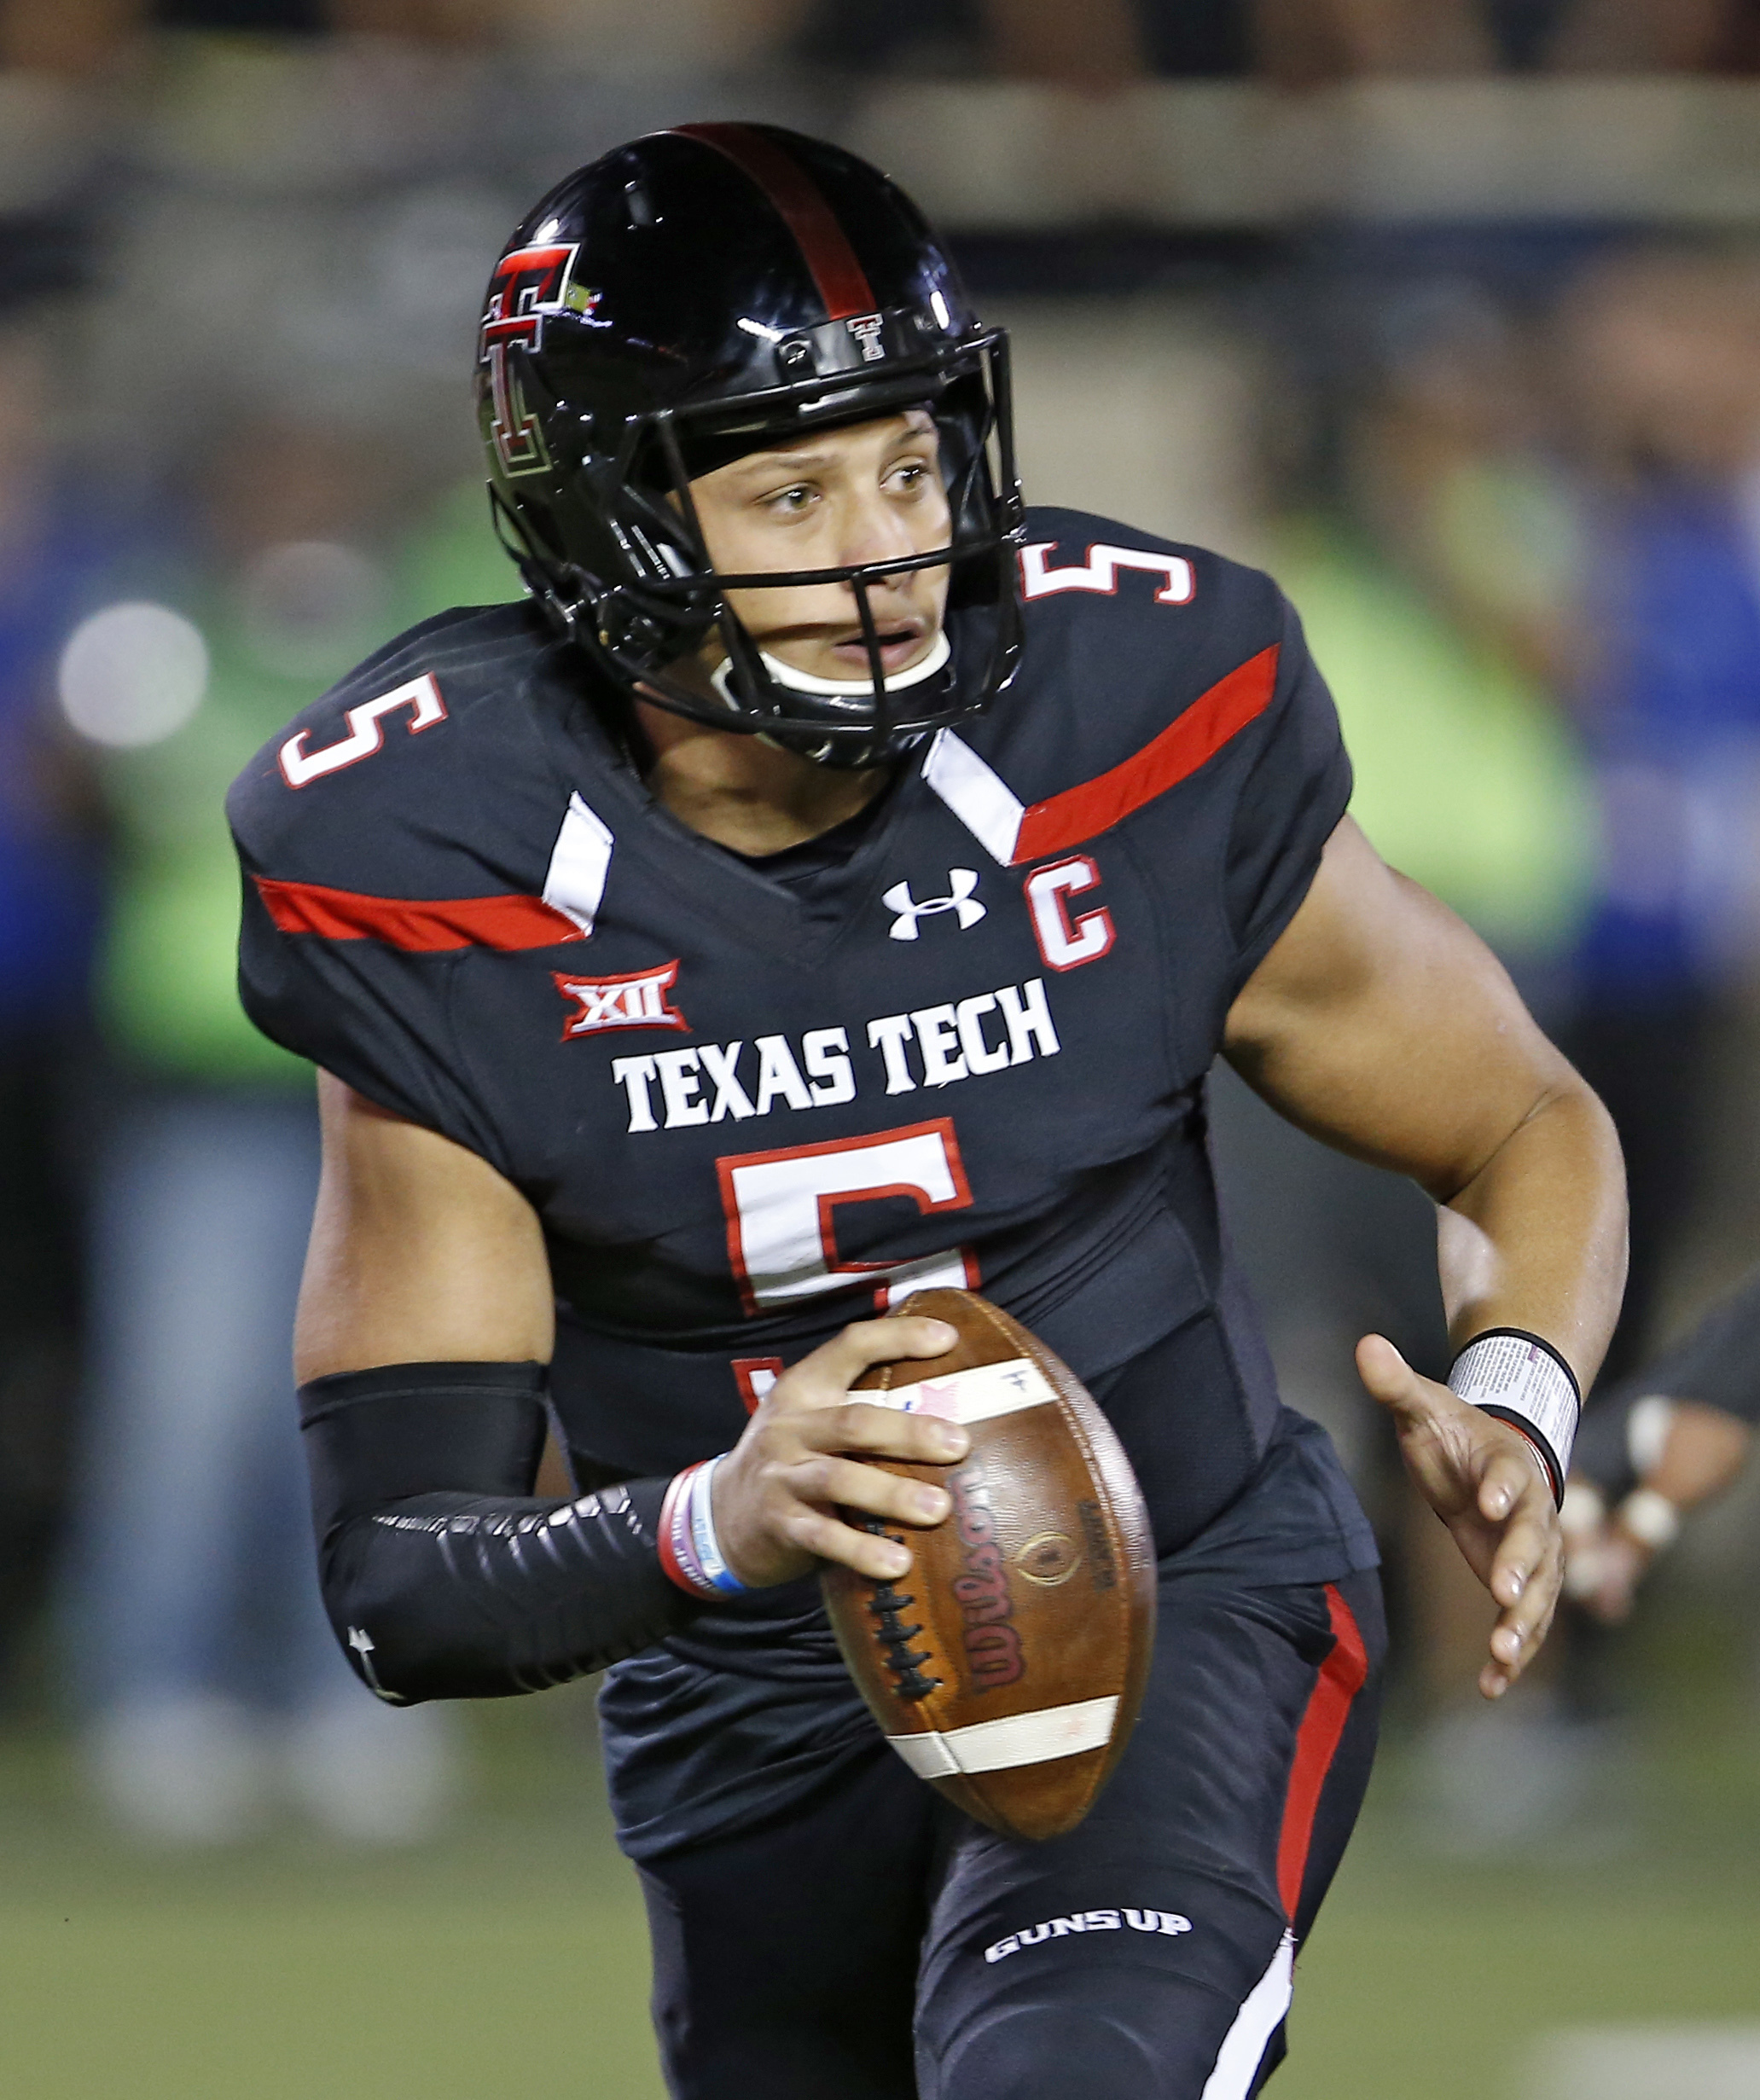 Texas Tech's Patrick Mahomes (5) looks to pass the ball during an NCAA college football game against Oklahoma, Saturday, Oct. 22, 2016, in Lubbock, Texas. (Brad Tollefson/Lubbock Avalanche-Journal via AP)